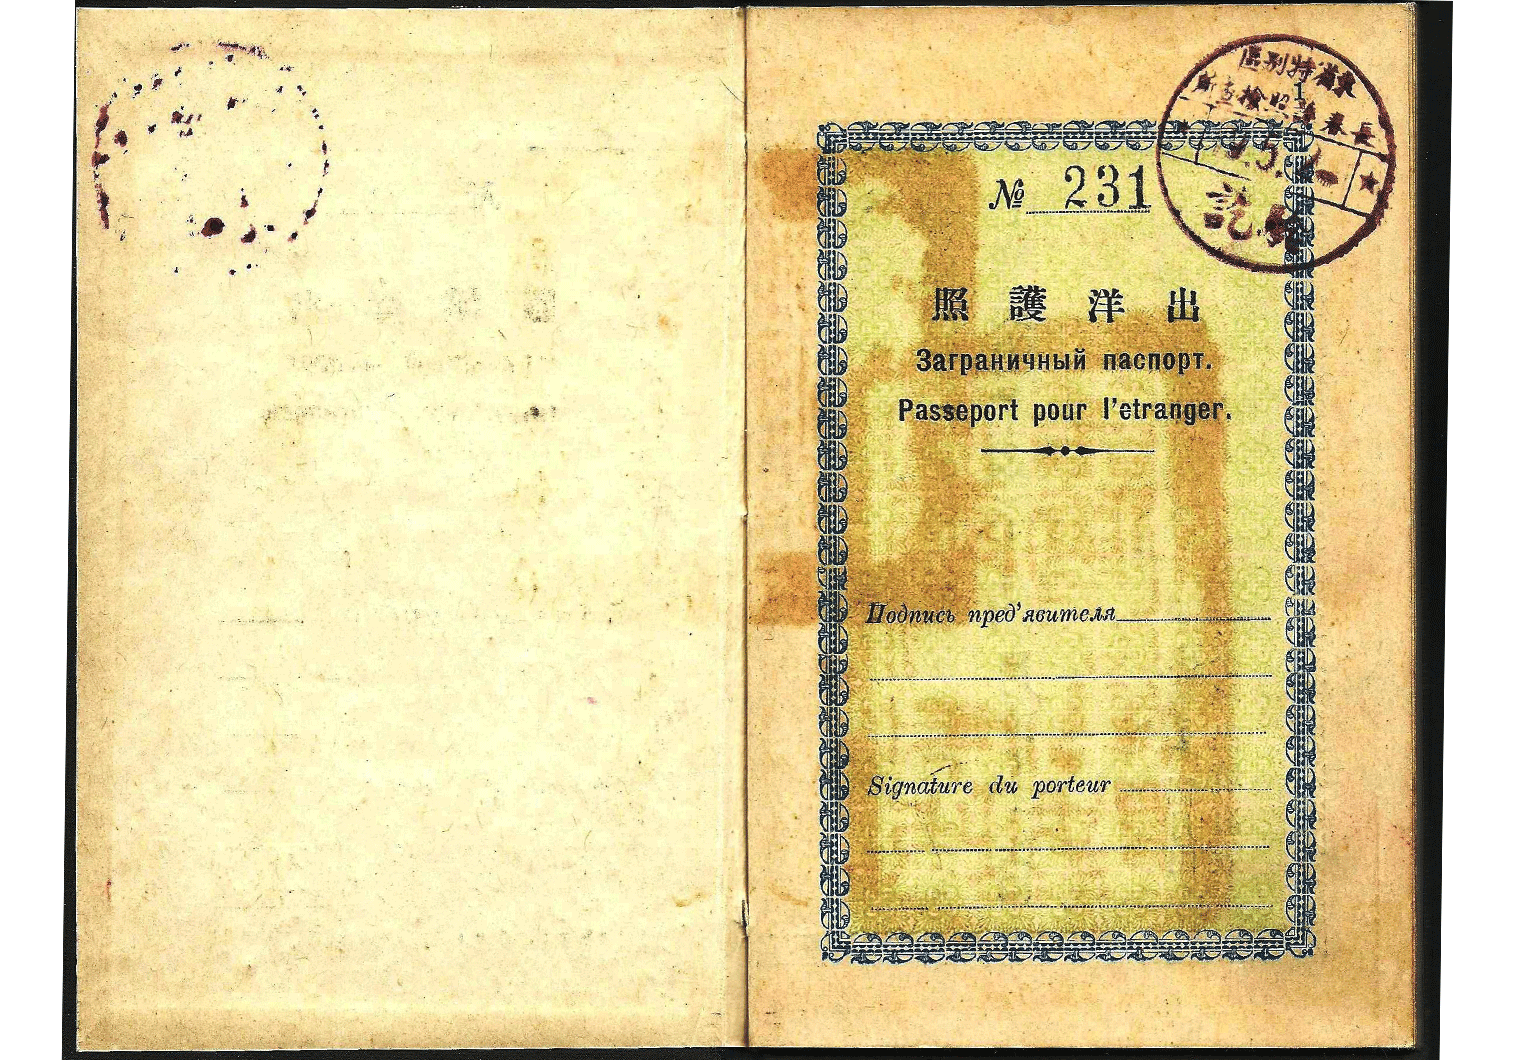 Chinese  passport - old travel document